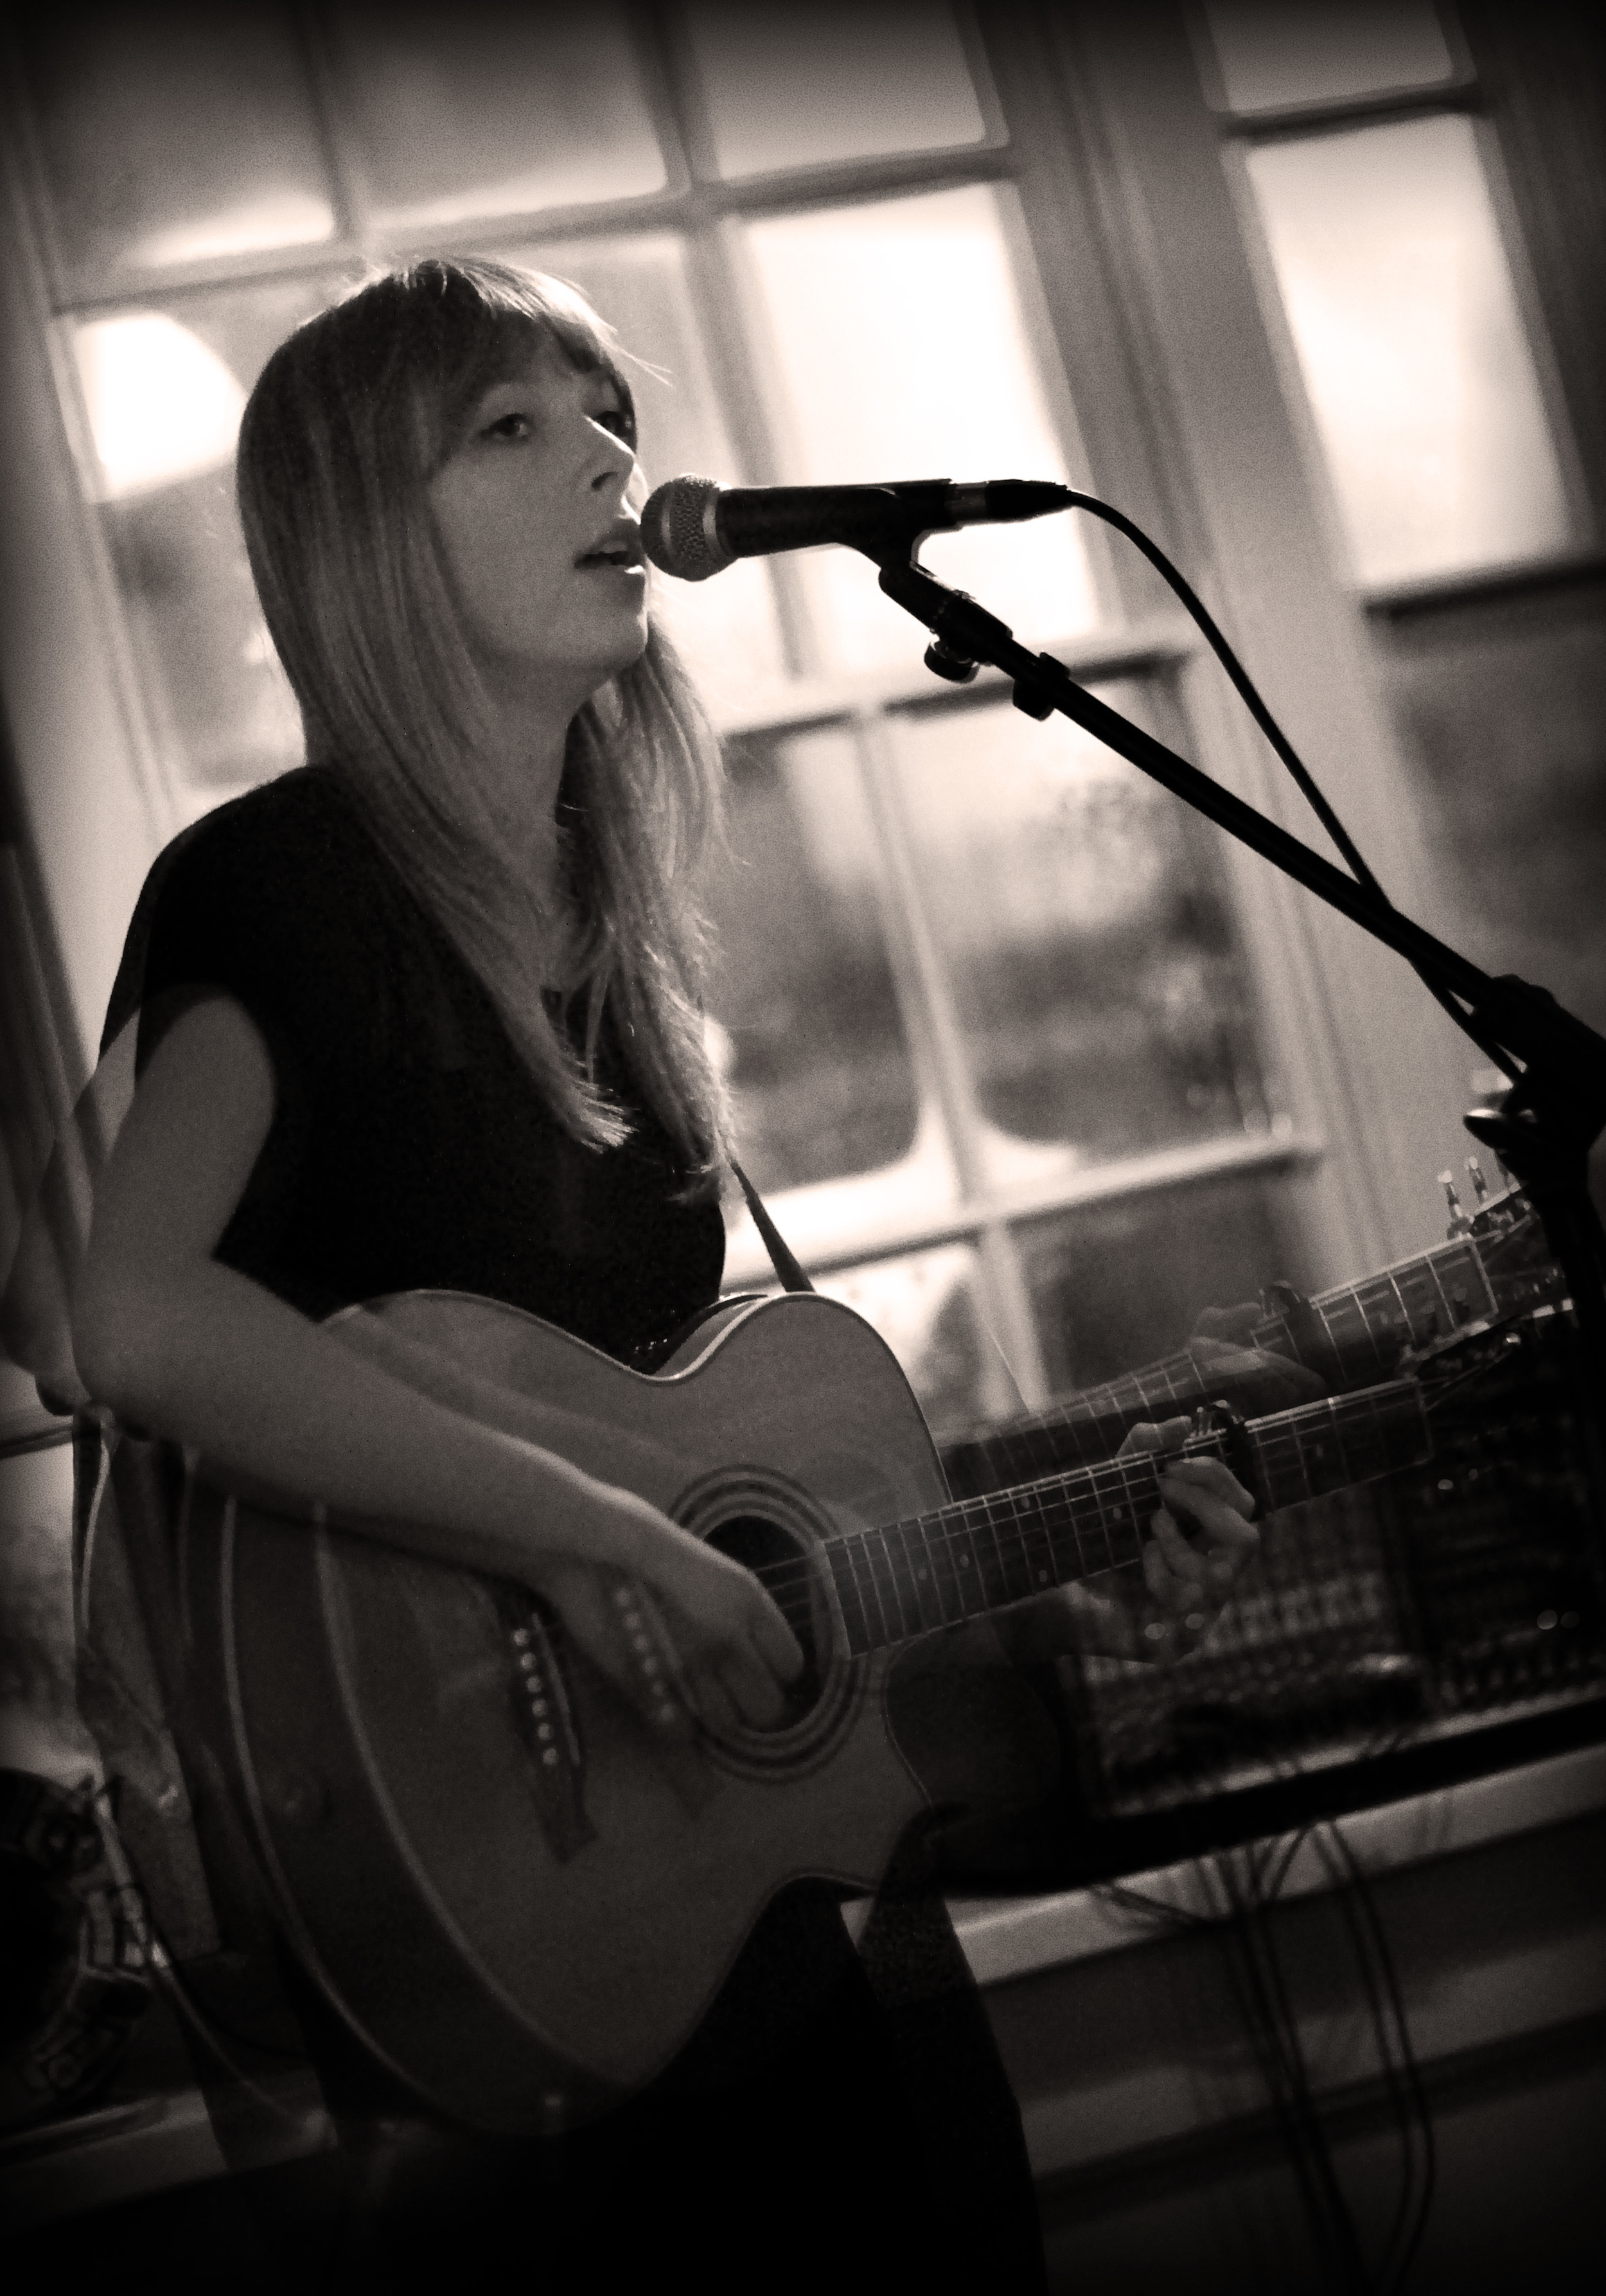 I performed one of my new songs for 2014, it's called 'Drifting' - seemed to go down well!